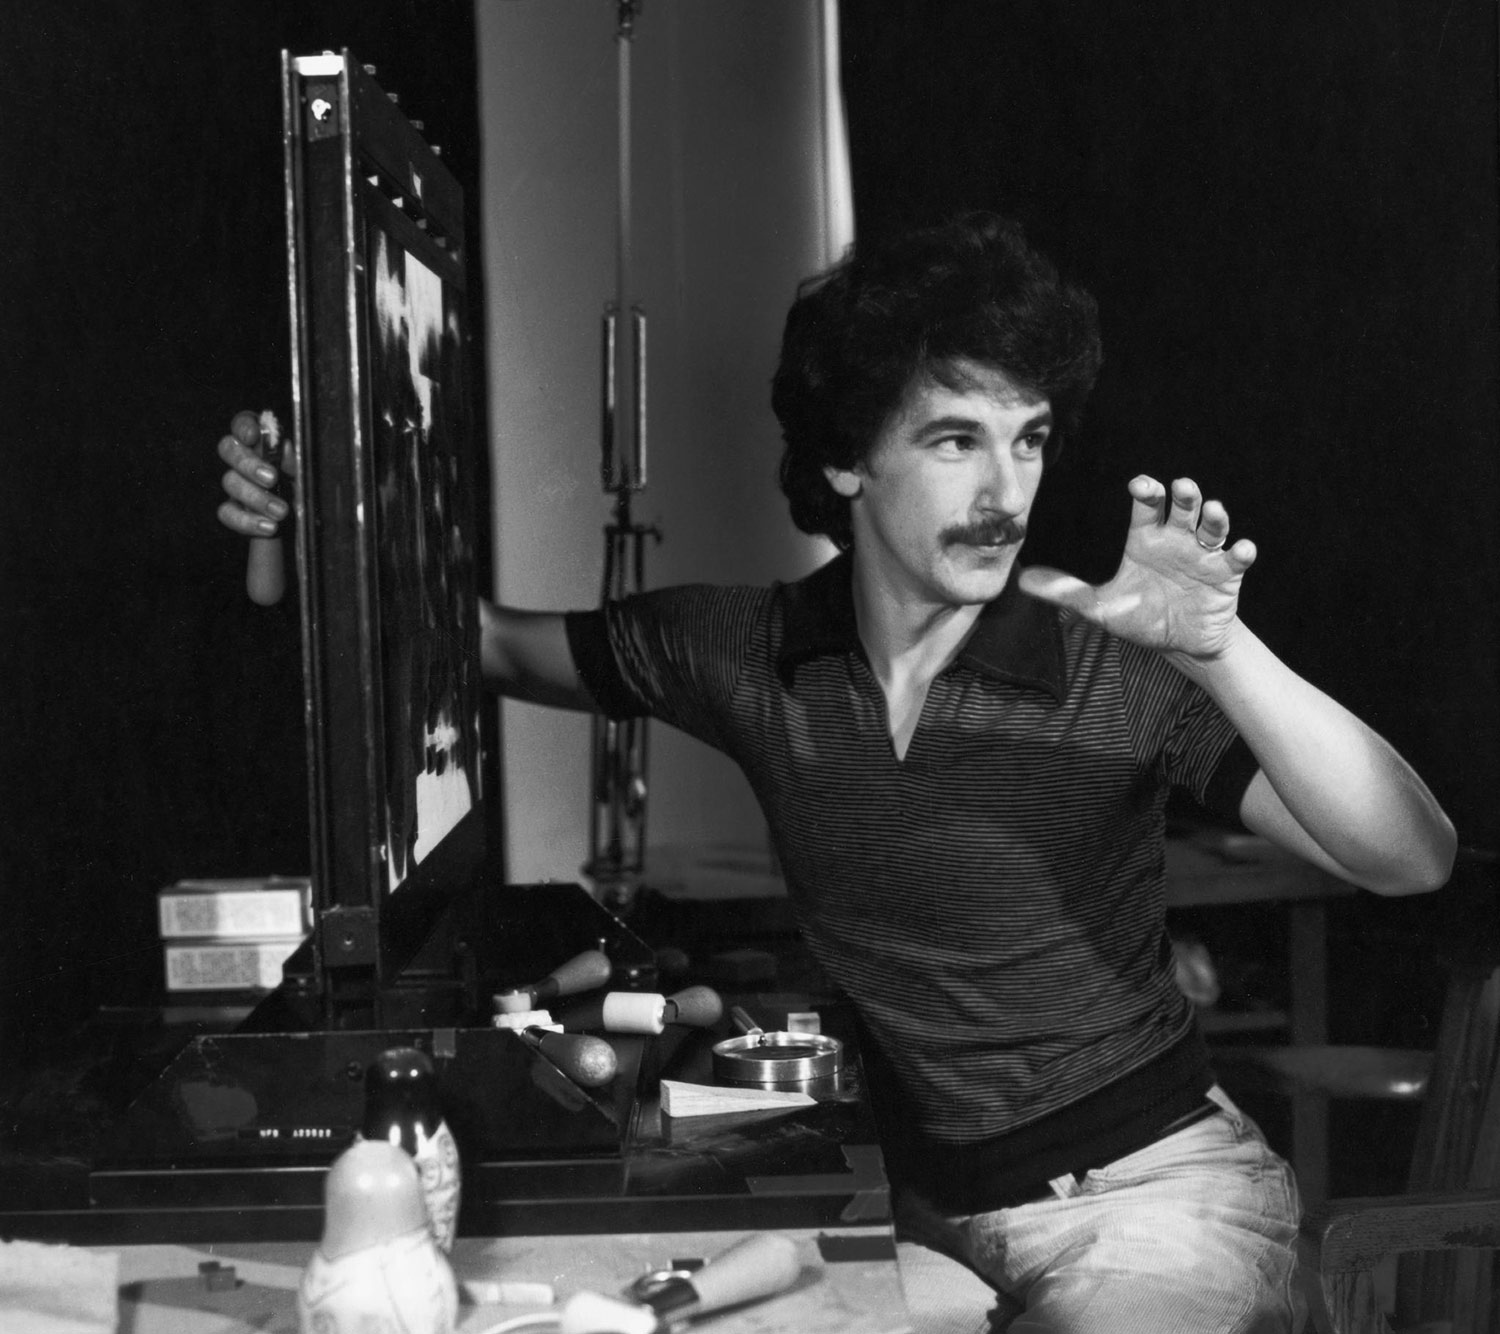 Drouin working with the pinscreen in the 1970s. © National Film Board of Canada. All rights reserved.